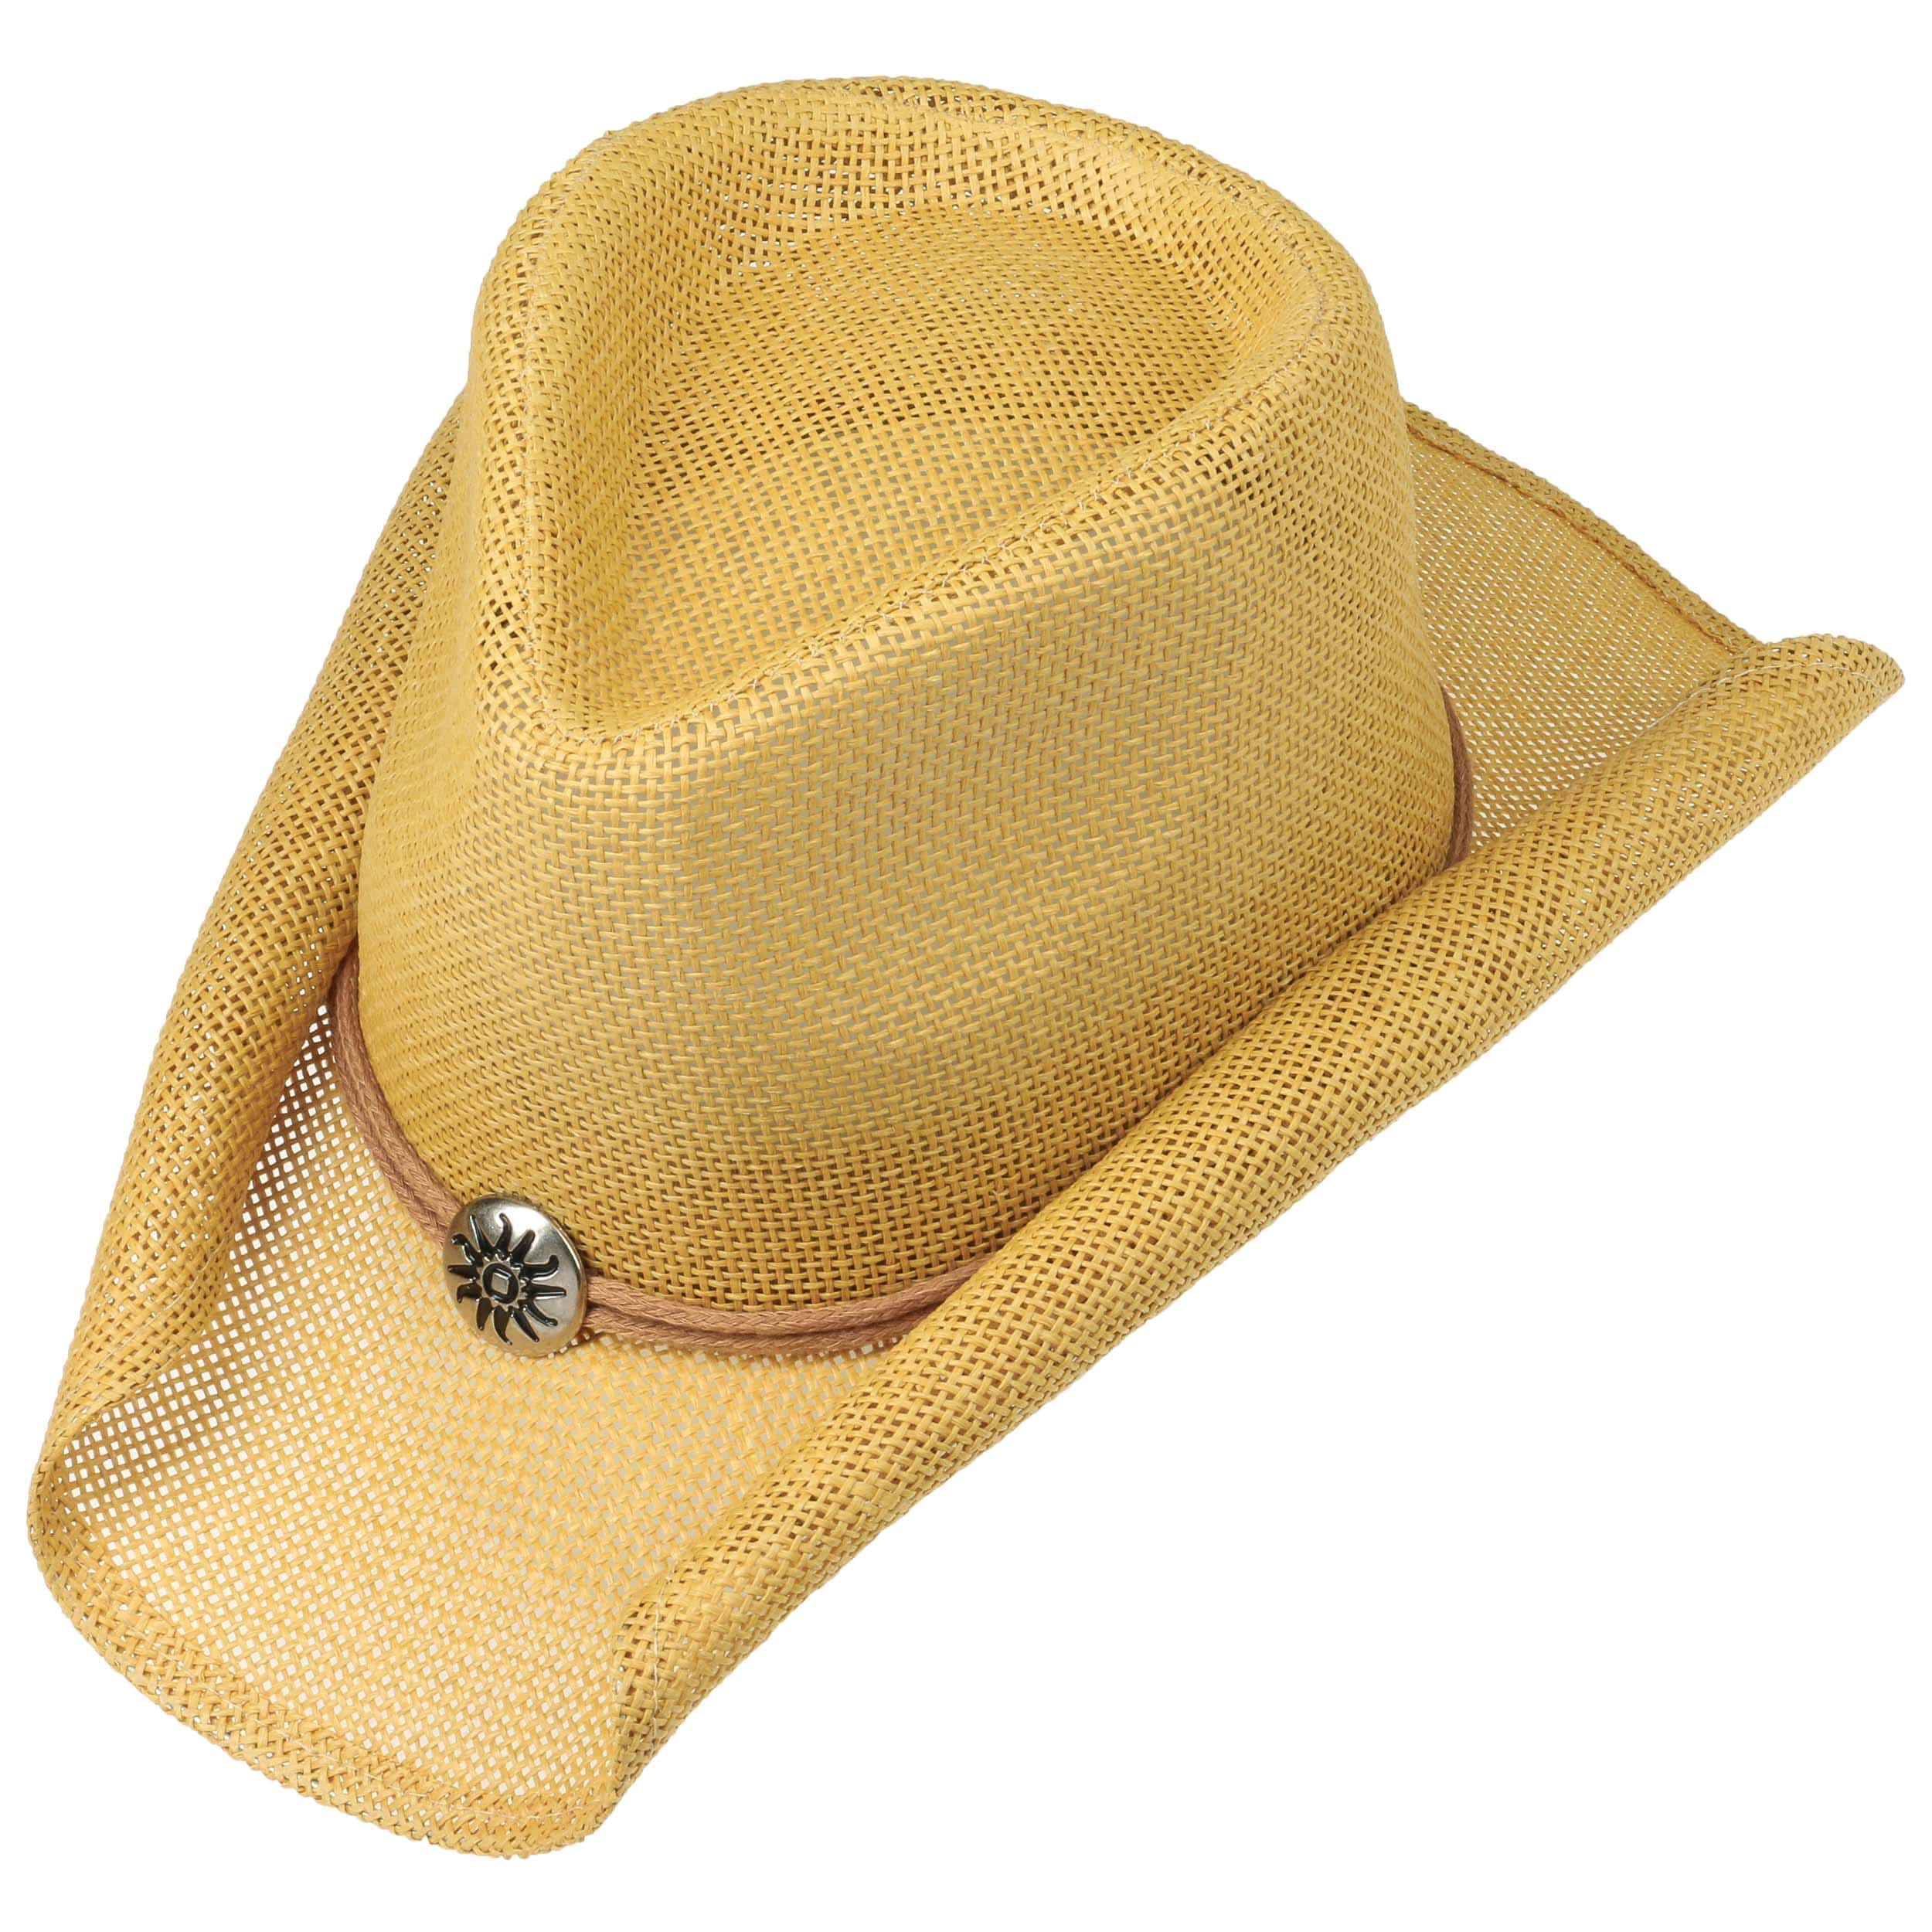 ... Yeehaw Kids Cowboy Hat by Lipodo - nature 1 ... 9893f6f7a1d9